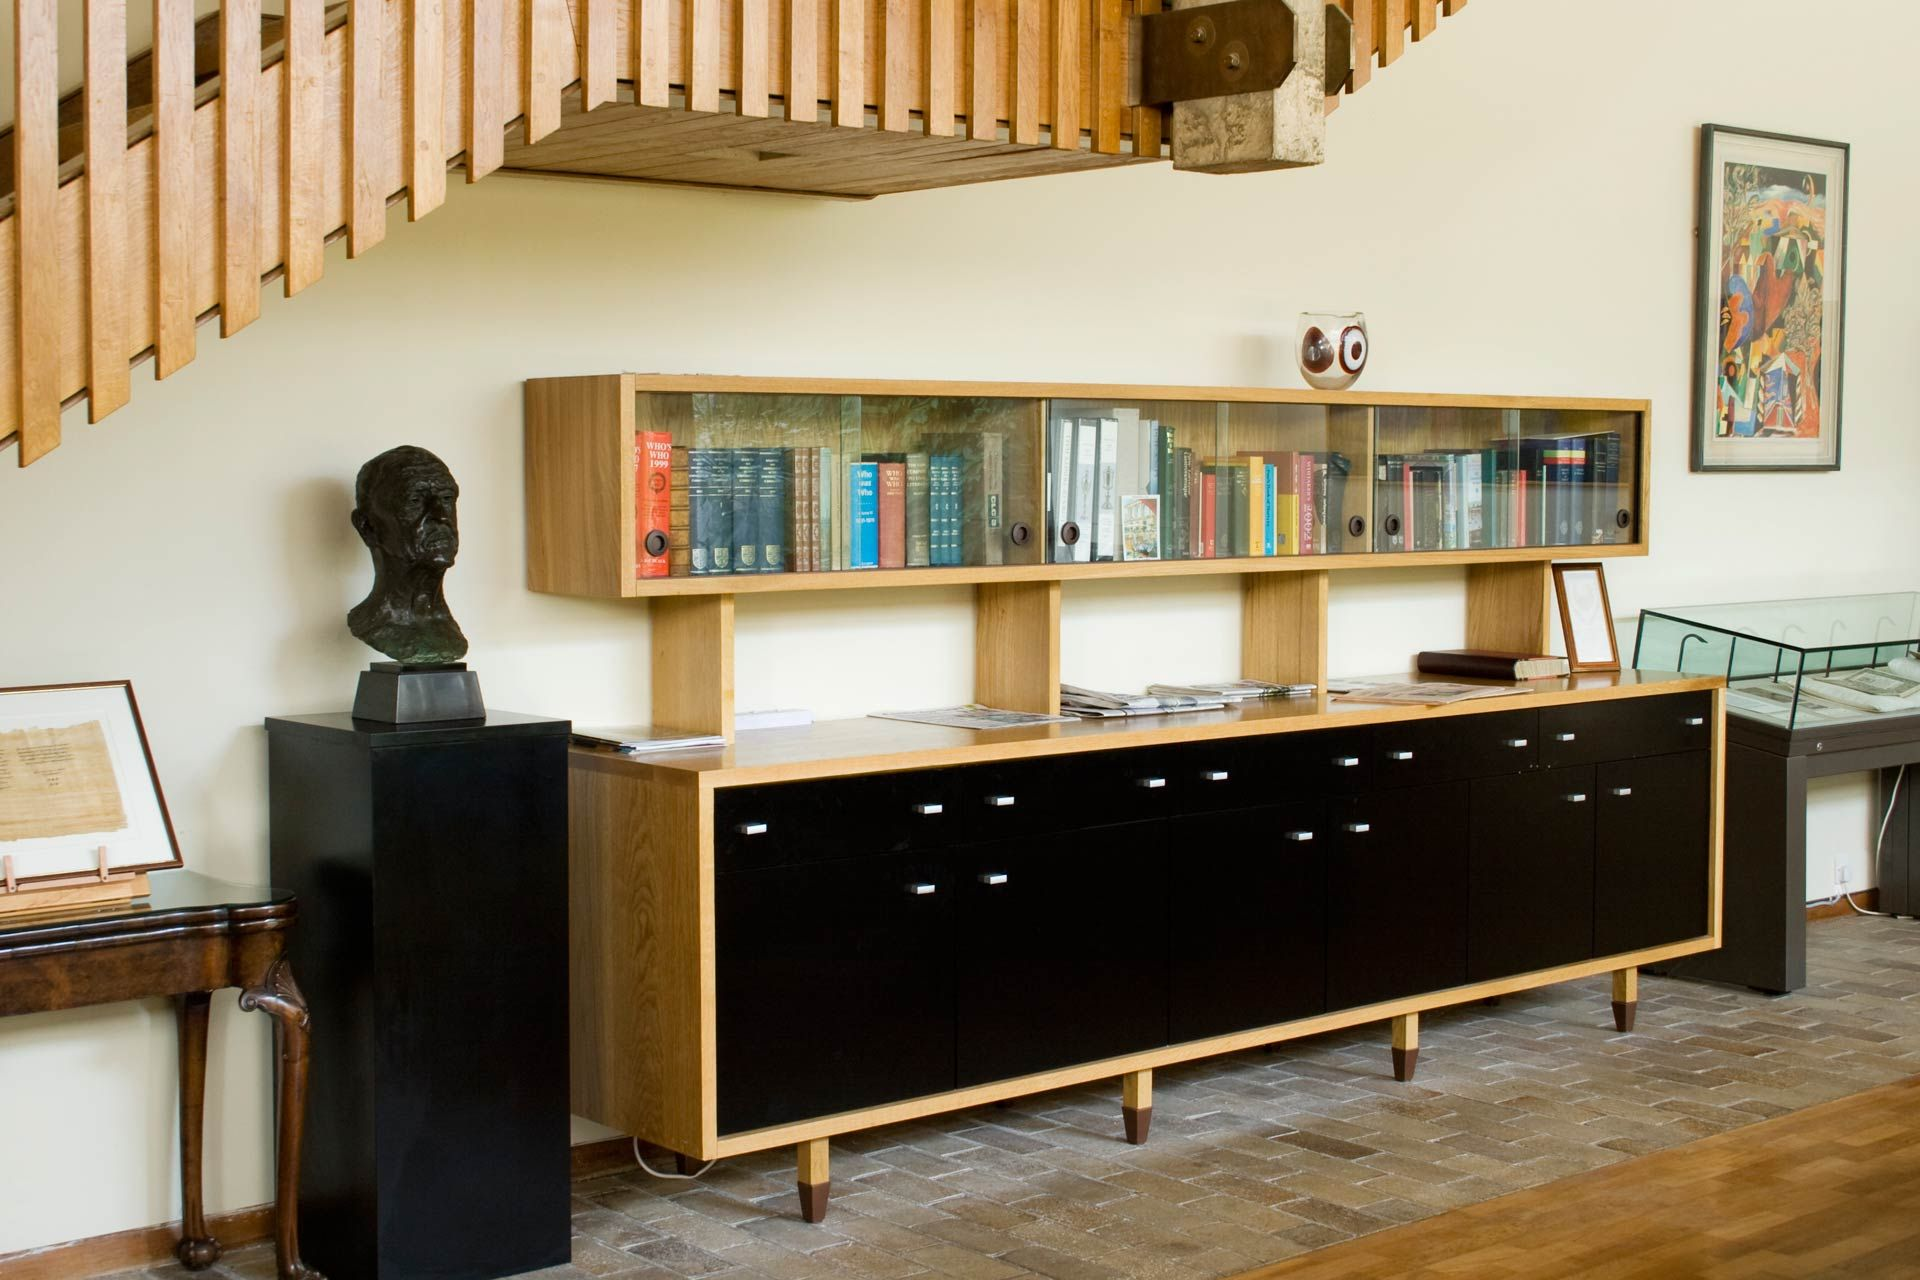 images about Cabinet House on Pinterest Mini bars